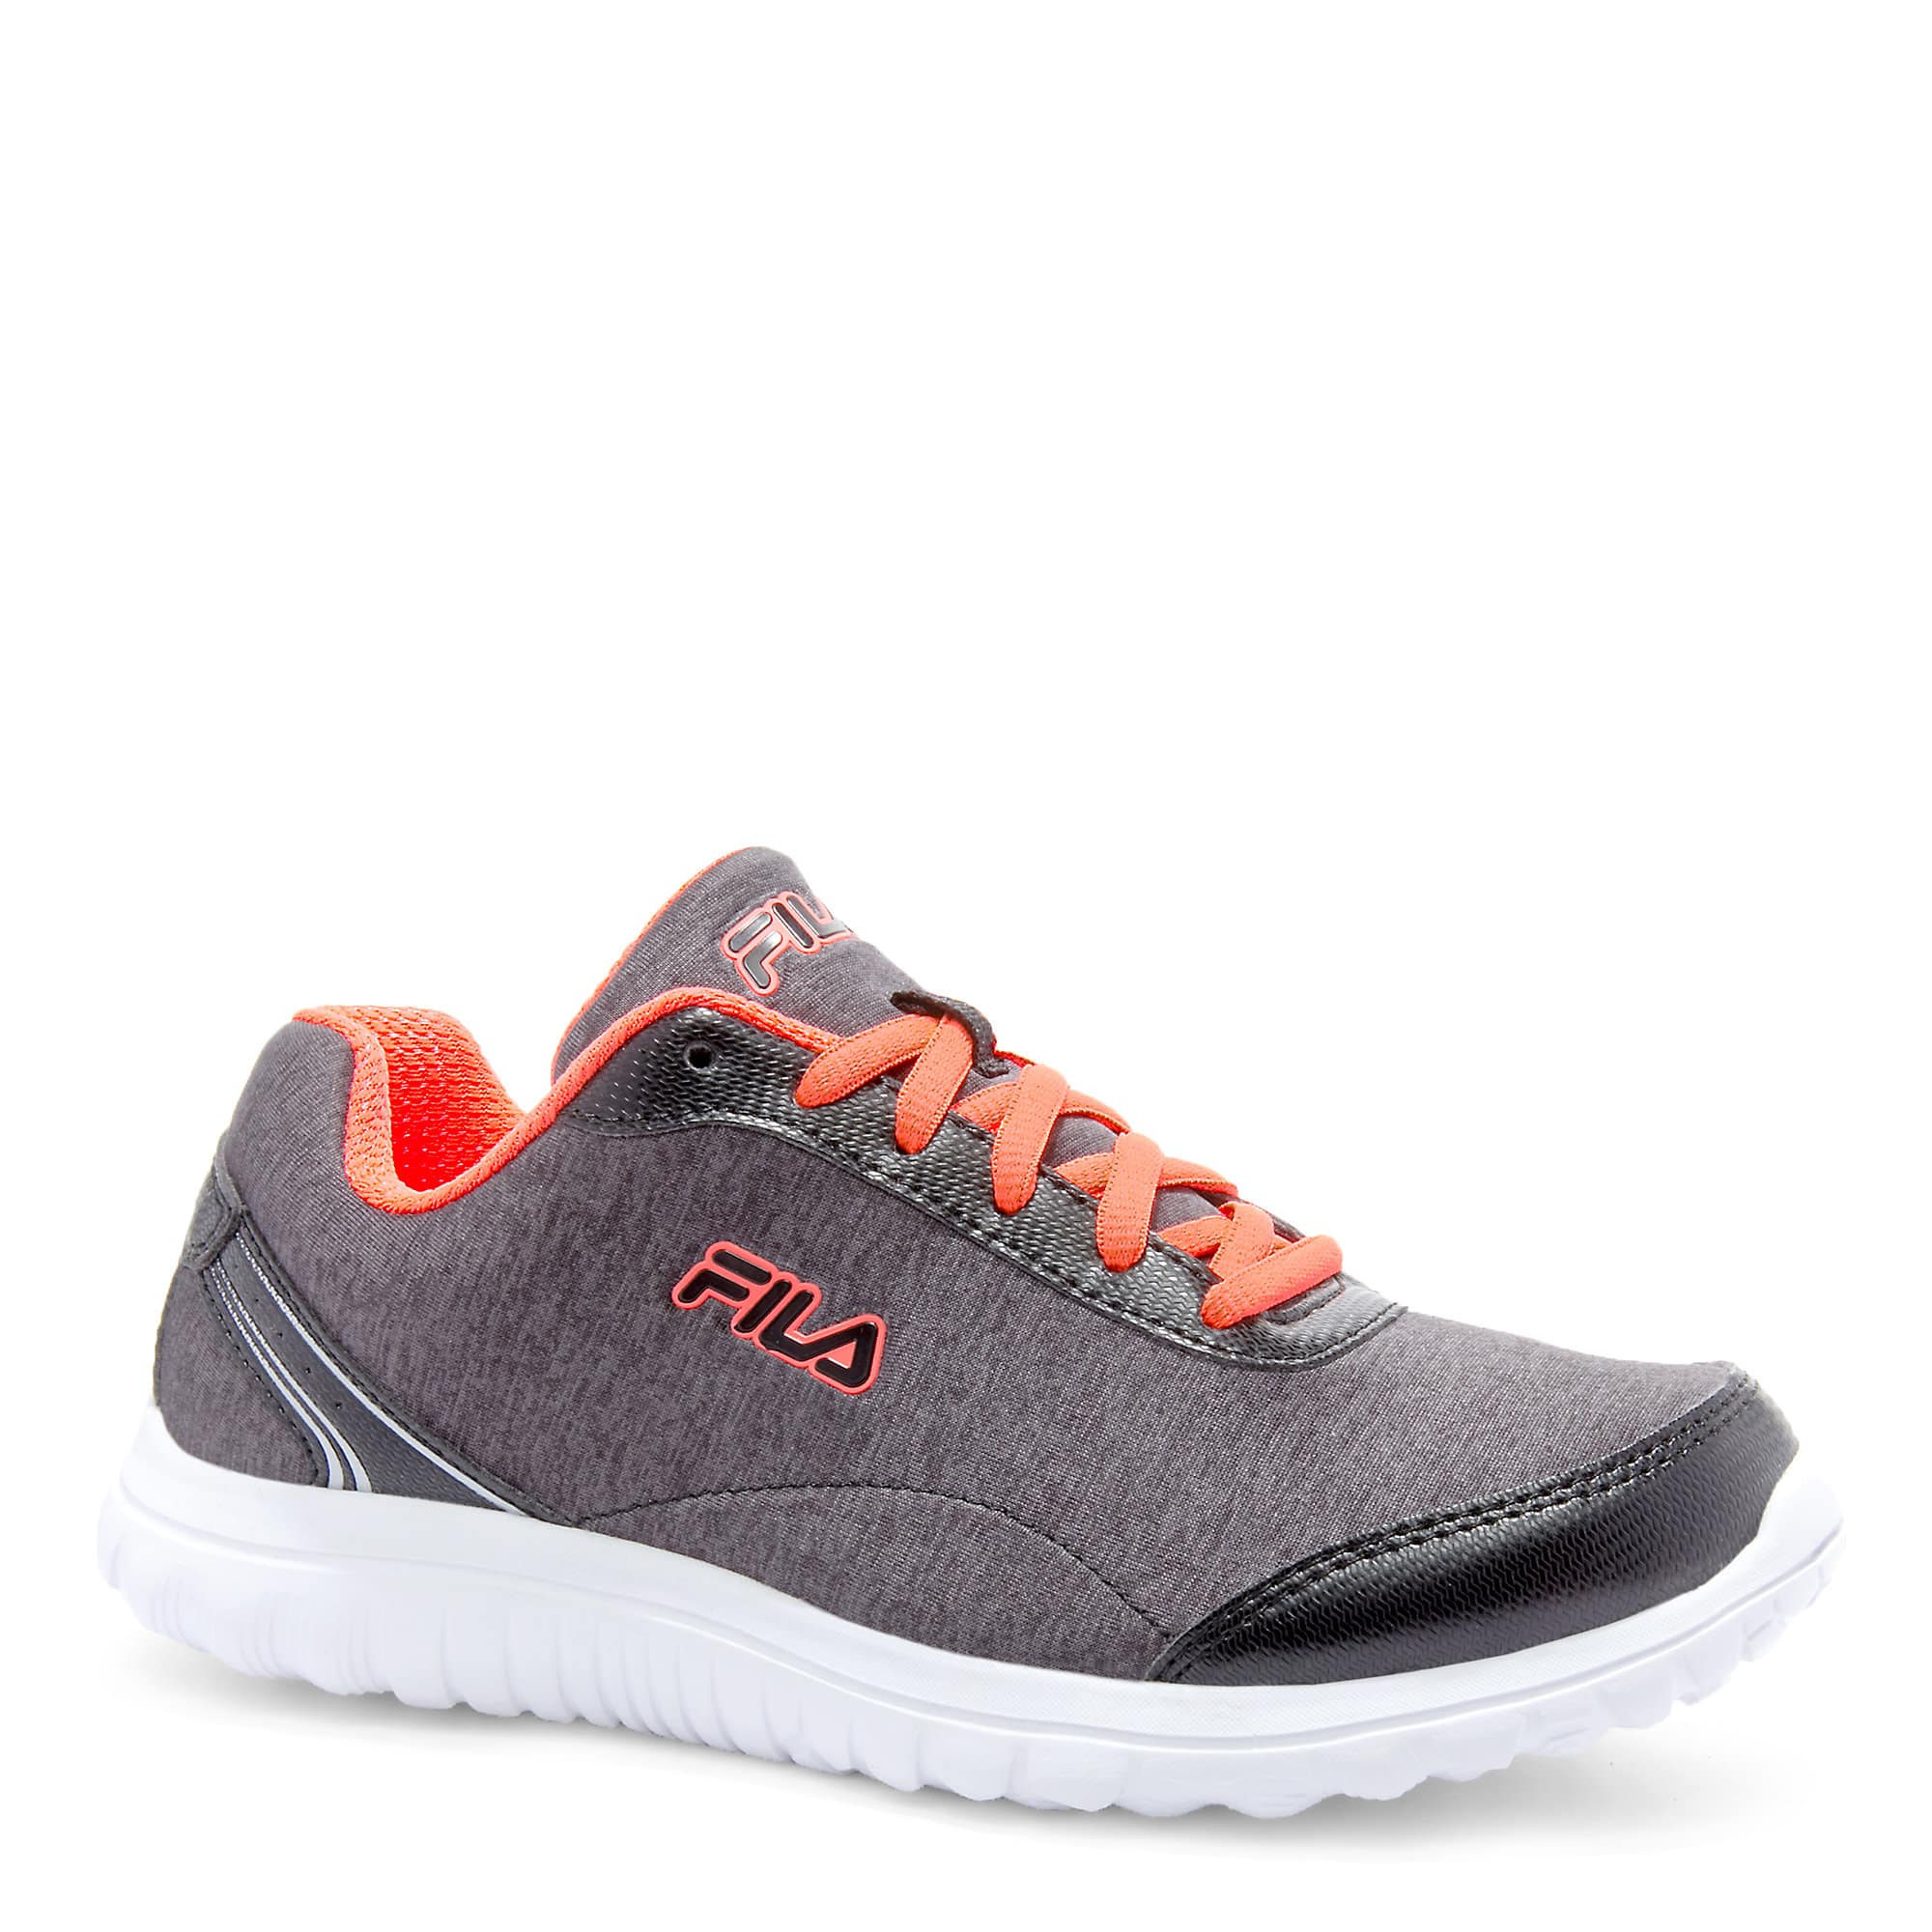 FILA Women's Lite Spring Heather Shoes $25 + Free Shipping!